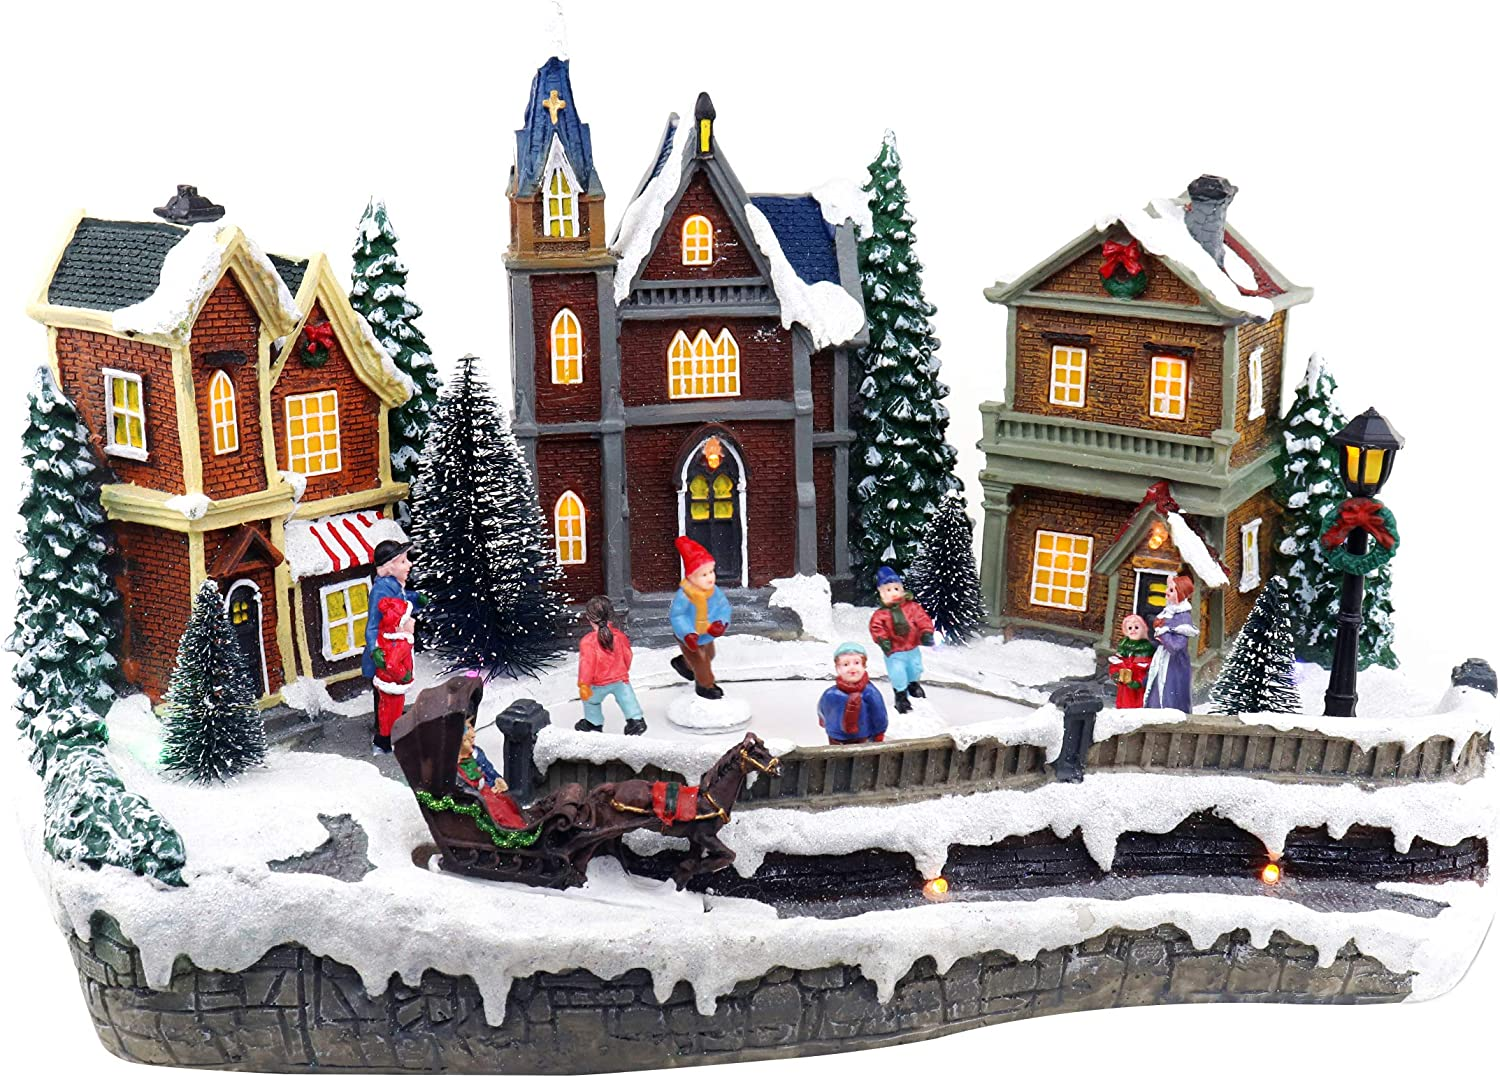 Skating Christmas Village | Animated Pre-lit Musical Winter Snow Village With 4 Moving Skaters | Perfect Addition to Your Christmas Indoor Decorations & Christmas Village Displays